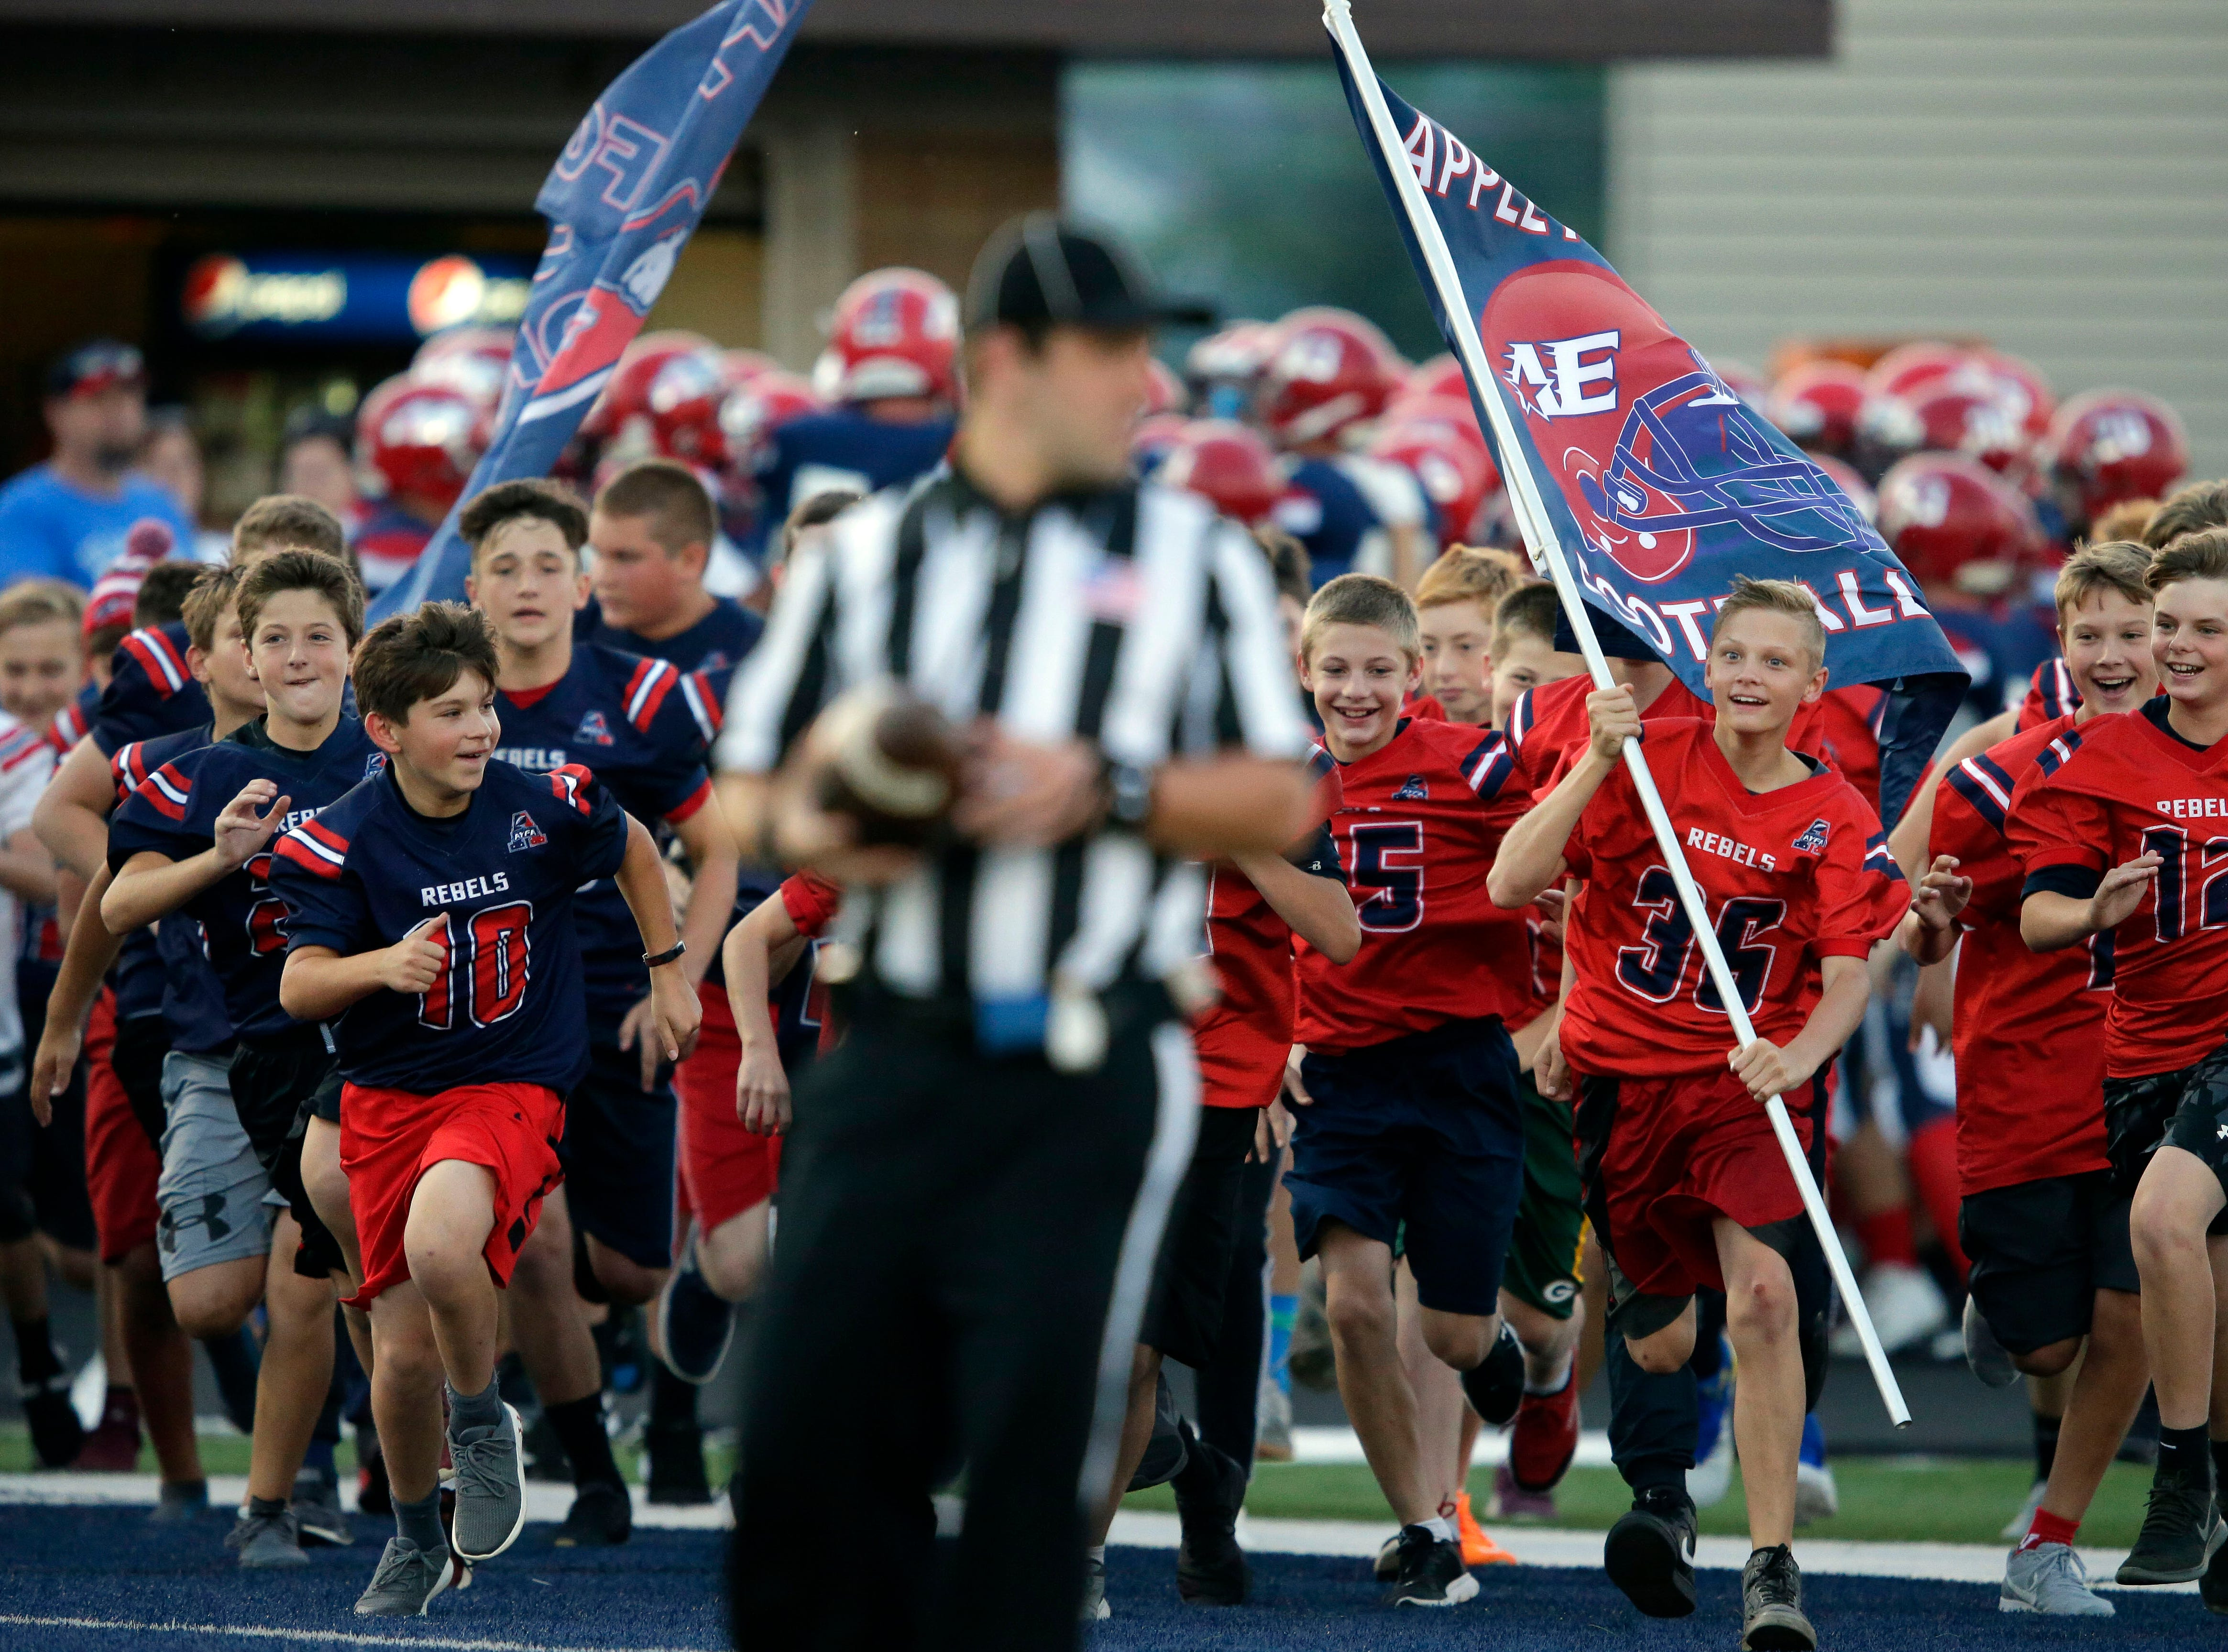 Young football players charge the field in front of the Appleton East Patriots before an unsuspecting referee dashes out of the way as the Patriots take on Appleton North in a Valley Football Association game Friday, September 14, 2018, at Appleton East High School in Appleton, Wis.Ron Page/USA TODAY NETWORK-Wisconsin